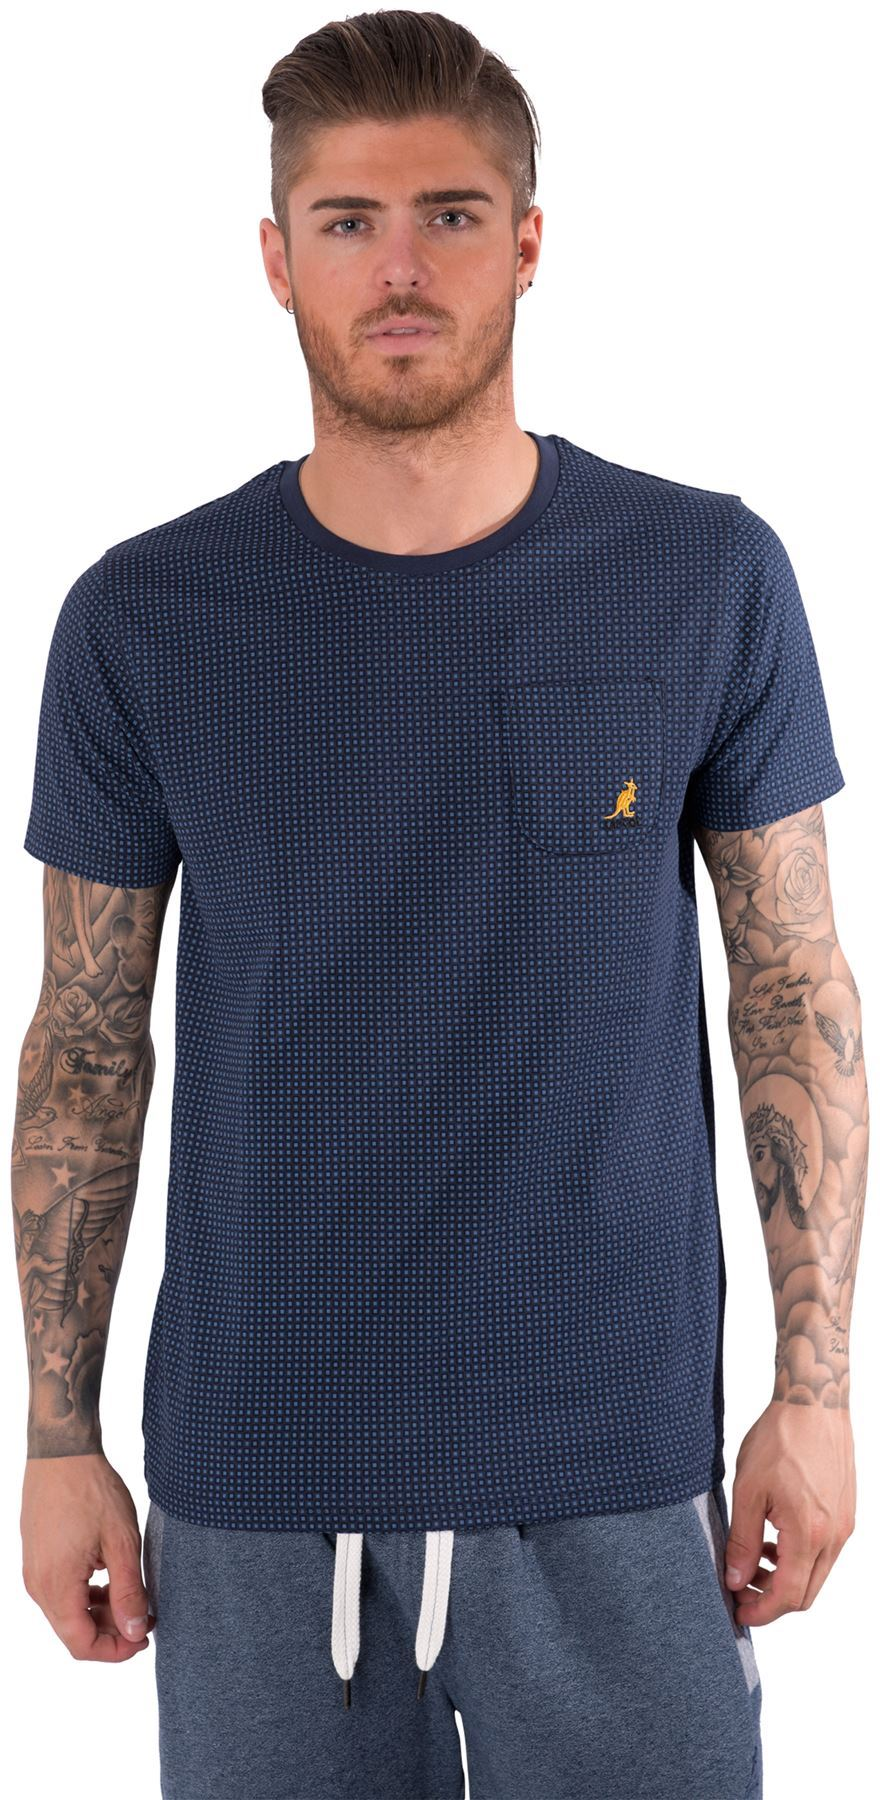 Kangol mens t shirt chest pocket crew neck short sleeved for Men s polo shirts with chest pocket